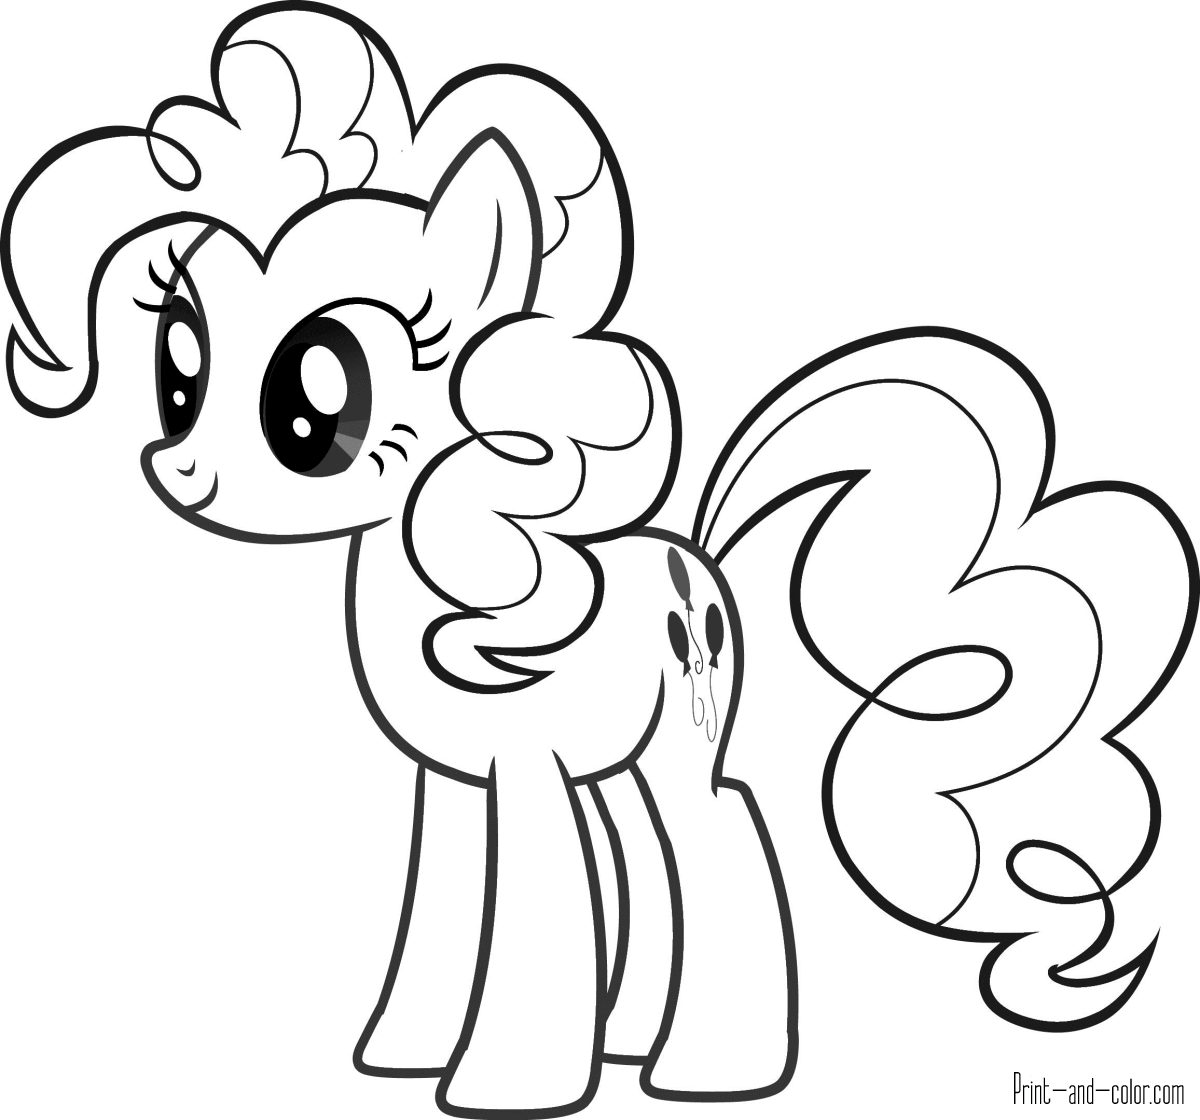 pony images for coloring free printable my little pony coloring pages for kids for images coloring pony